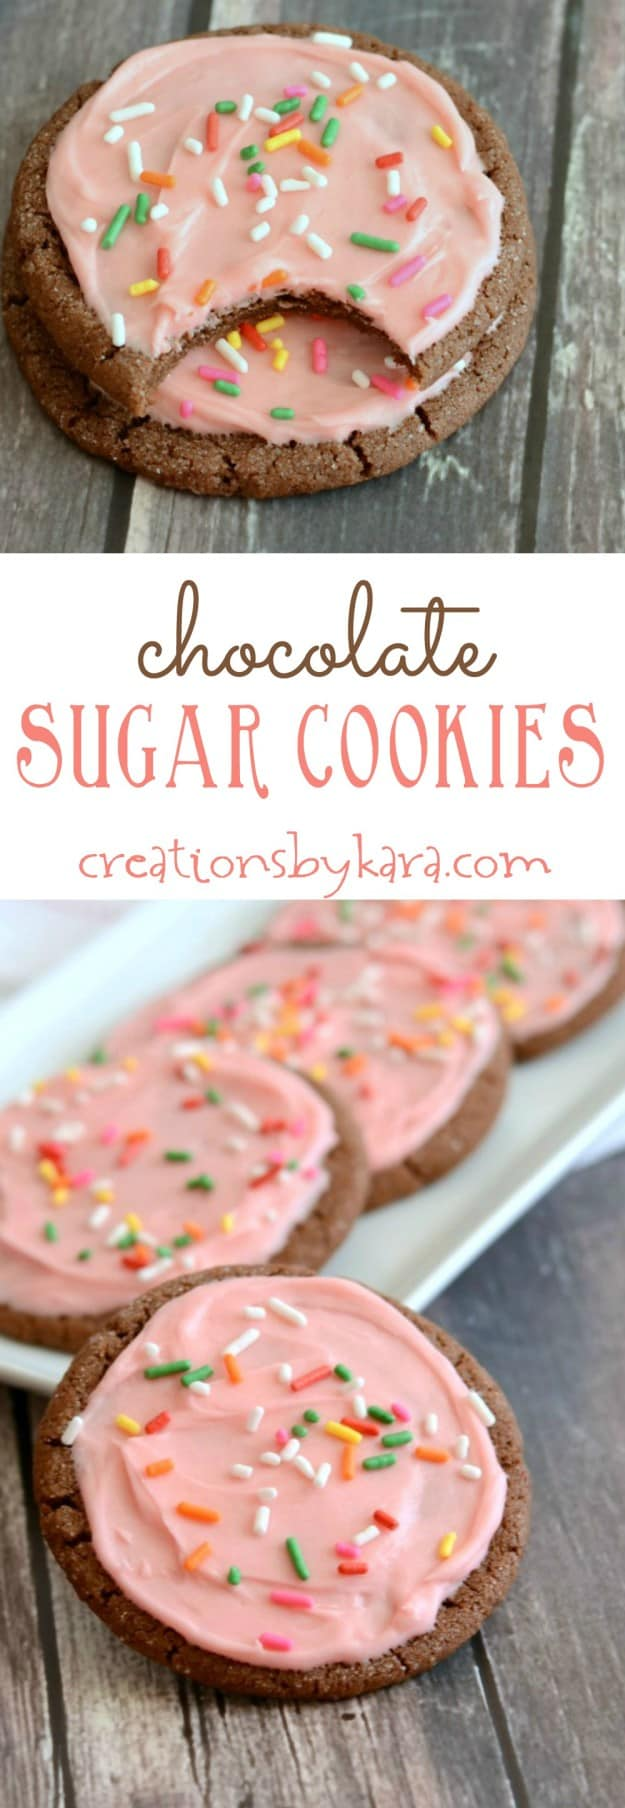 You have to try these Chocolate Sugar Cookies. They are soft and tasty, and so pretty to serve!